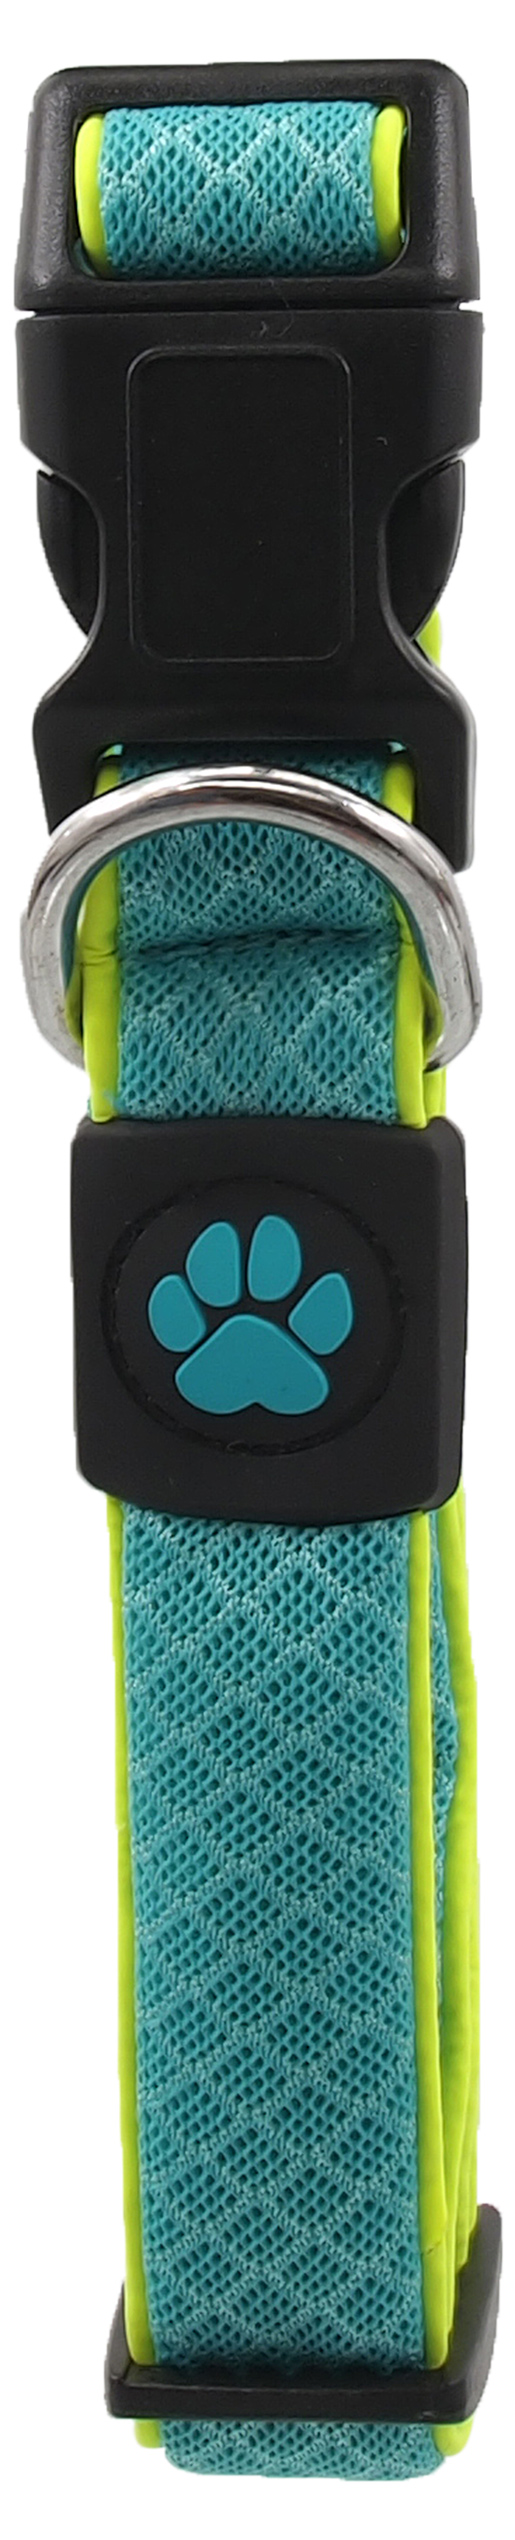 Dog Fantasy Obojek Active Dog Fluffy Reflective M tyrkys 2,5x35-51cm